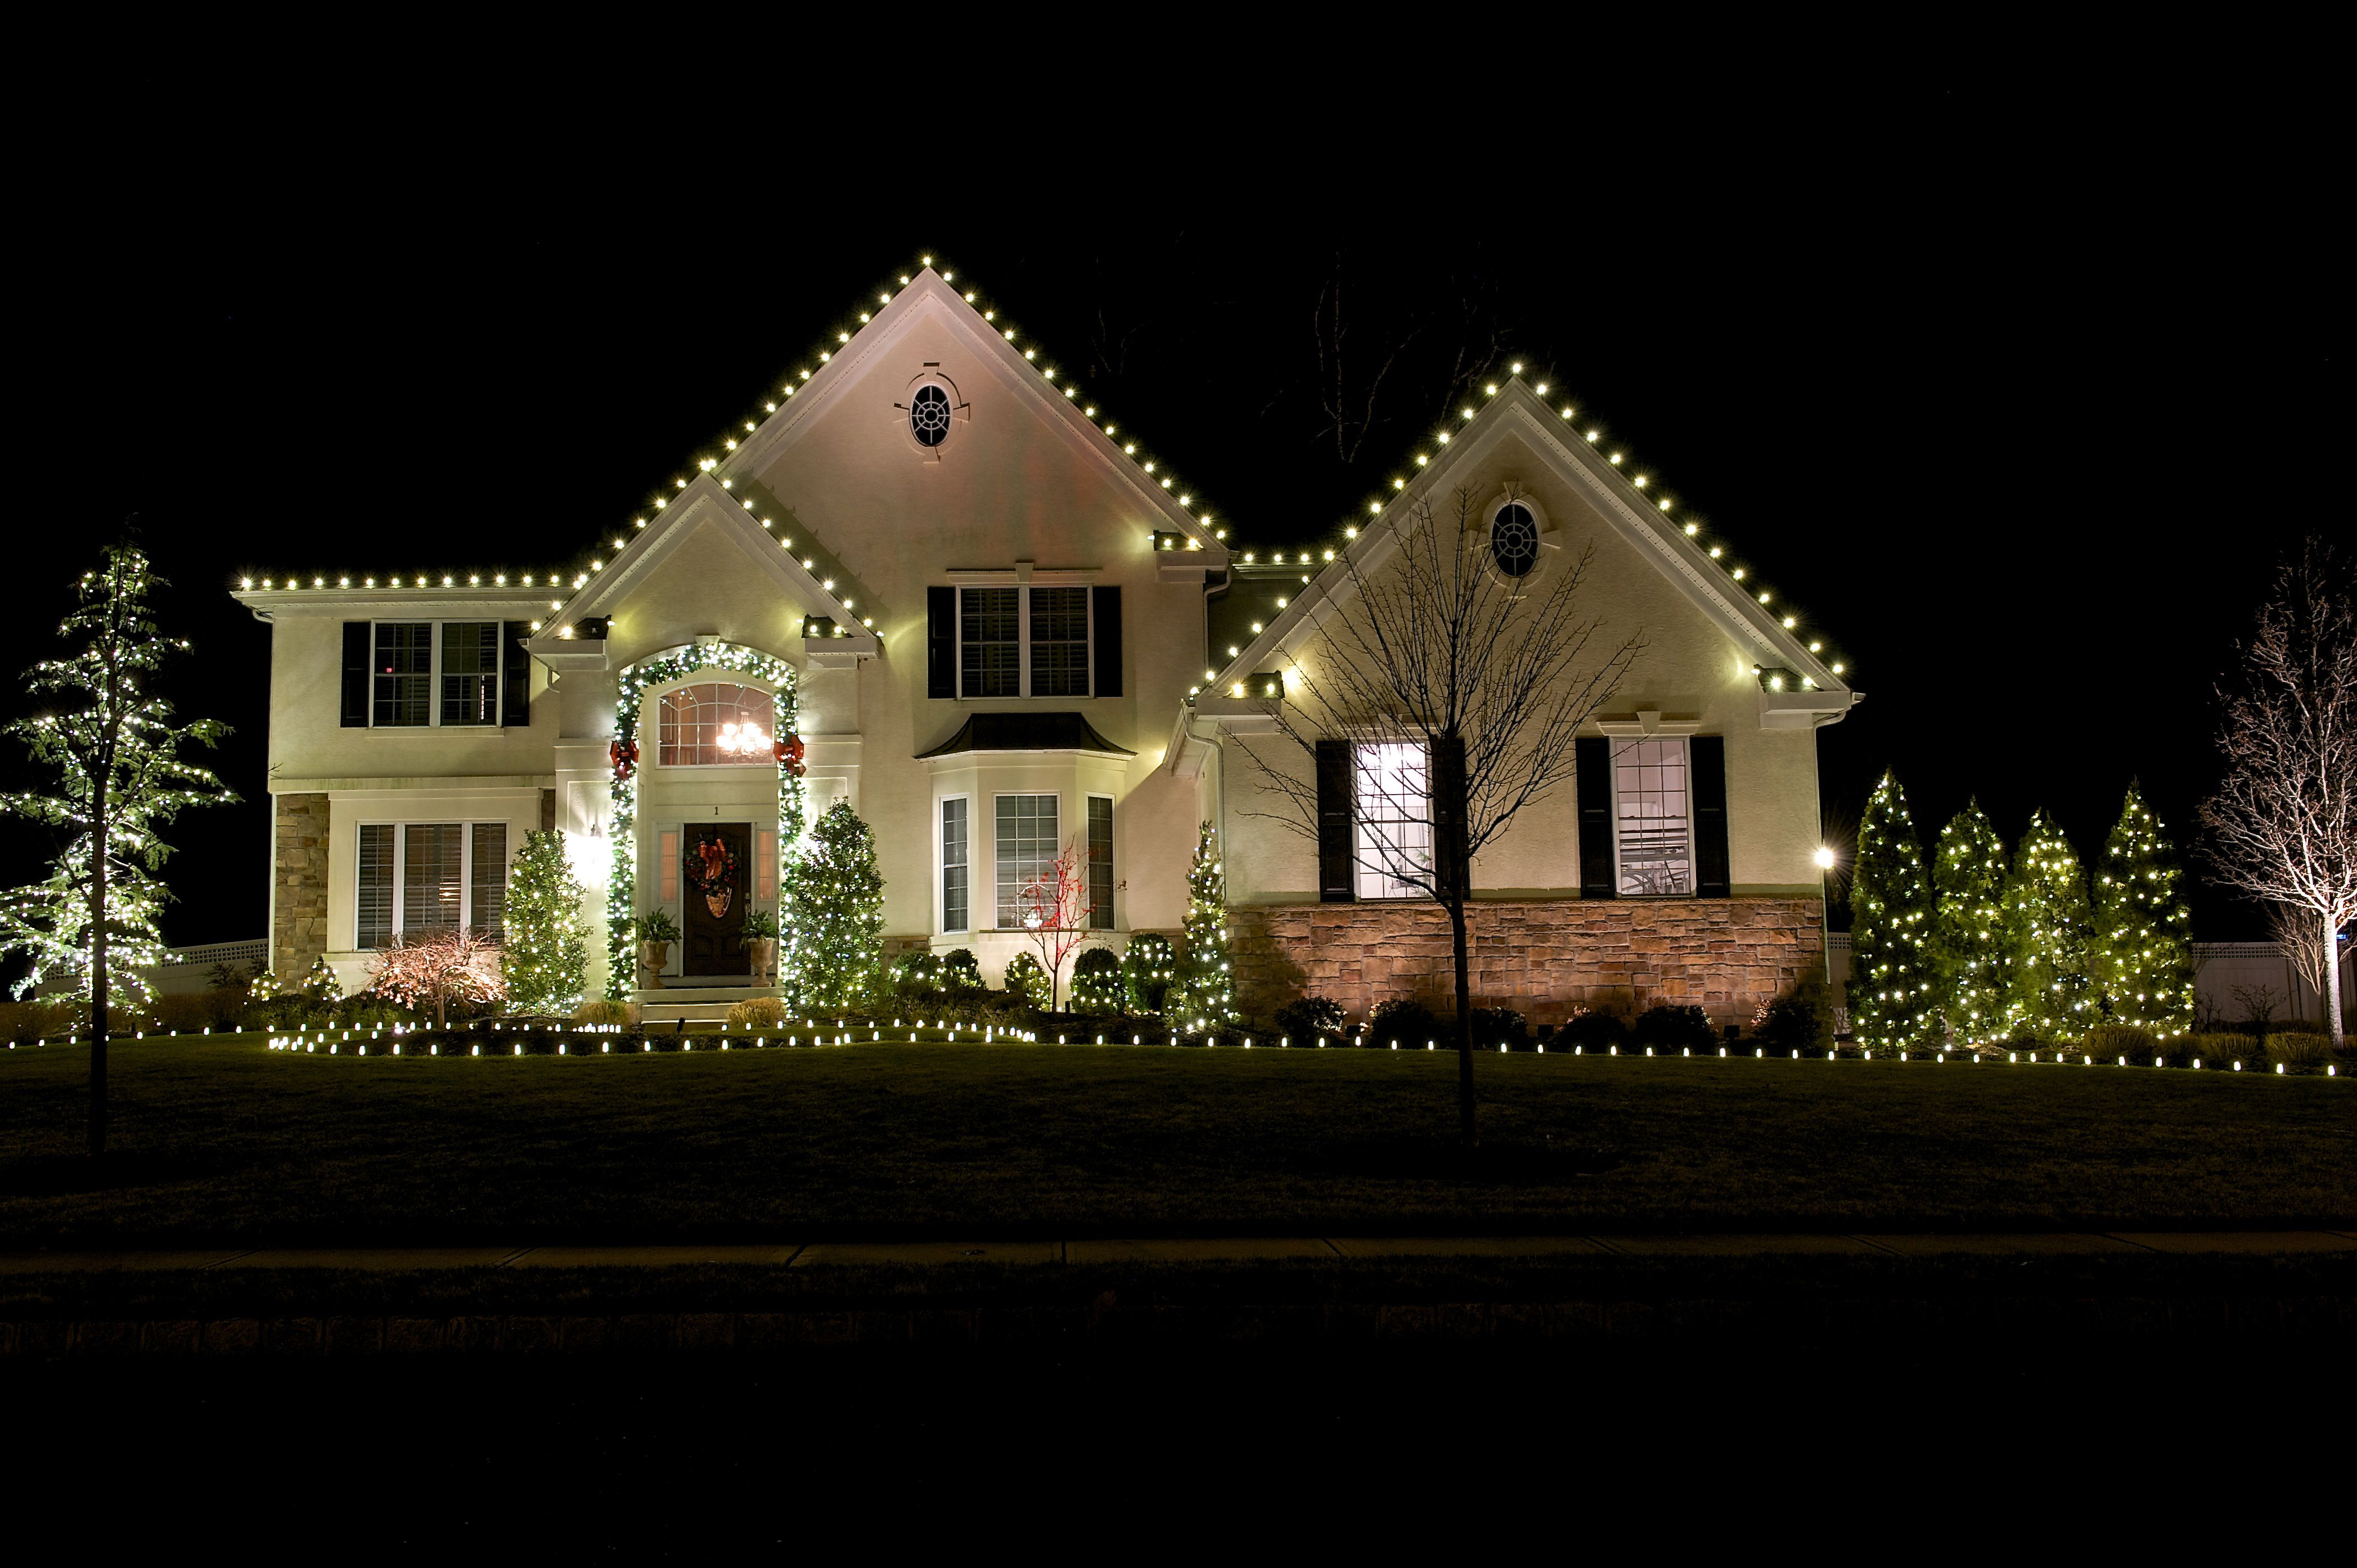 Photo Gallery: Christmas Decorating Ideas - House & Home